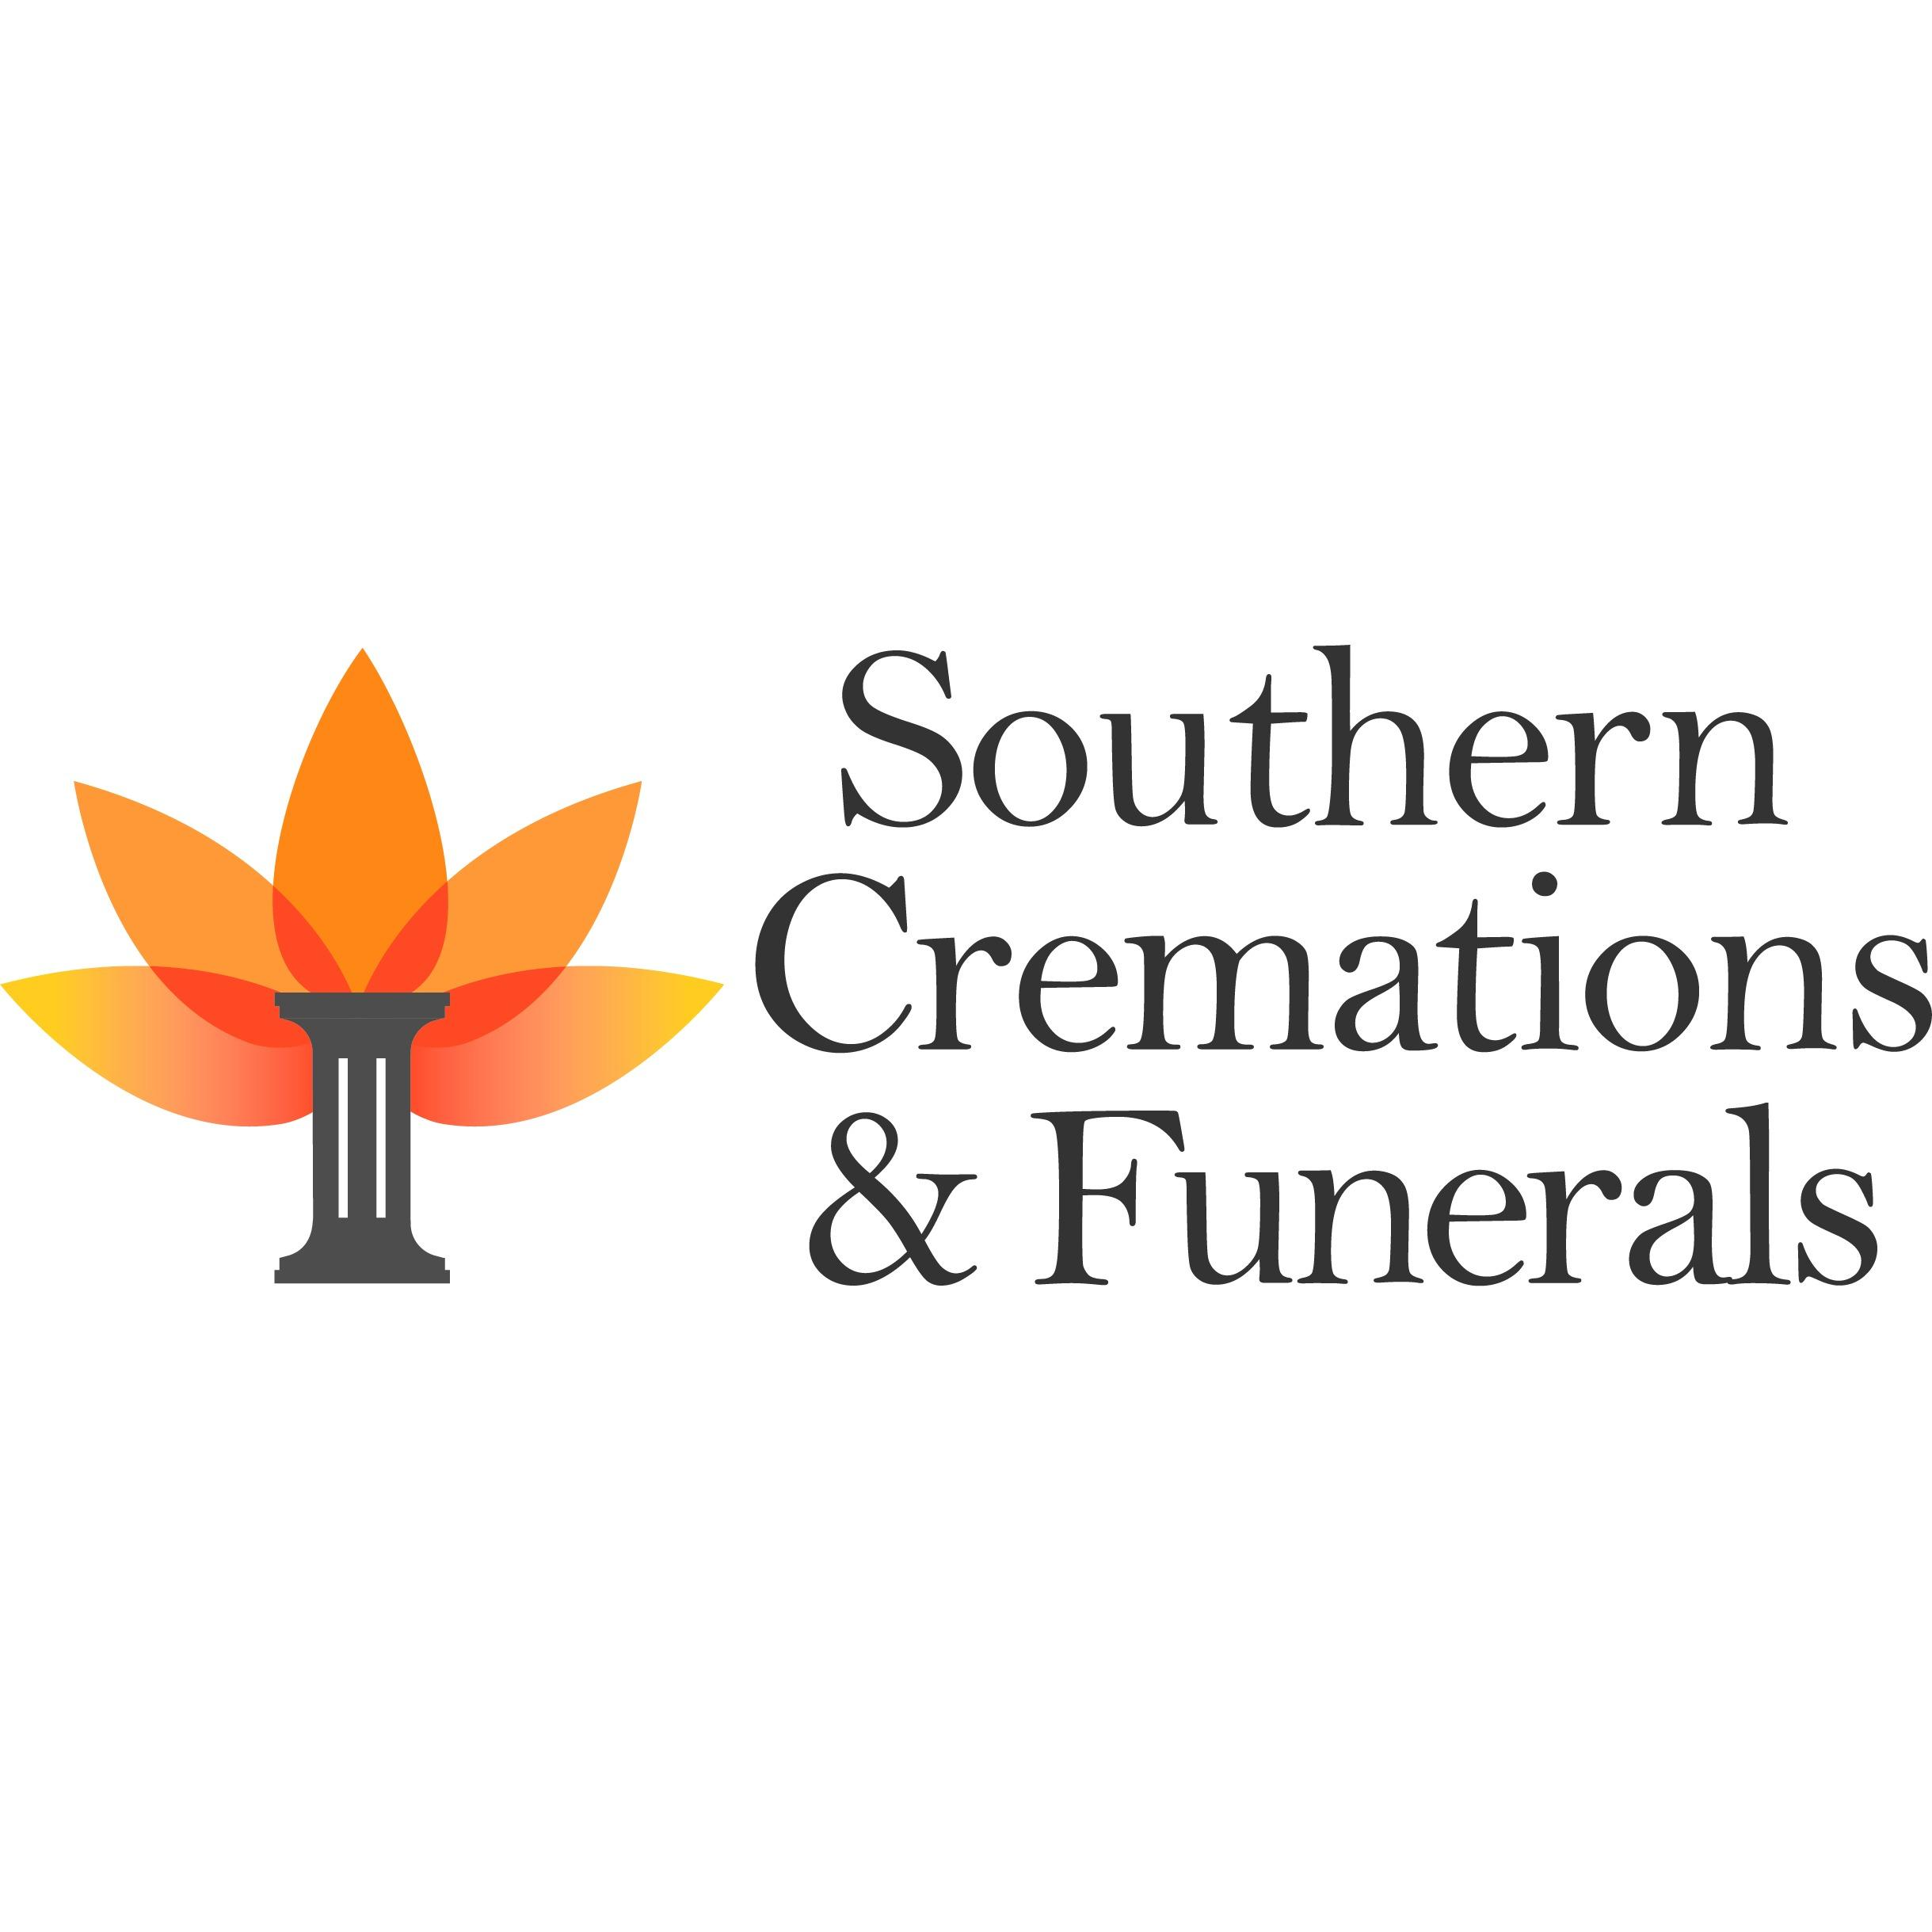 Southern Cremations & Funerals - Covington, GA 30014 - (770)485-1006 | ShowMeLocal.com